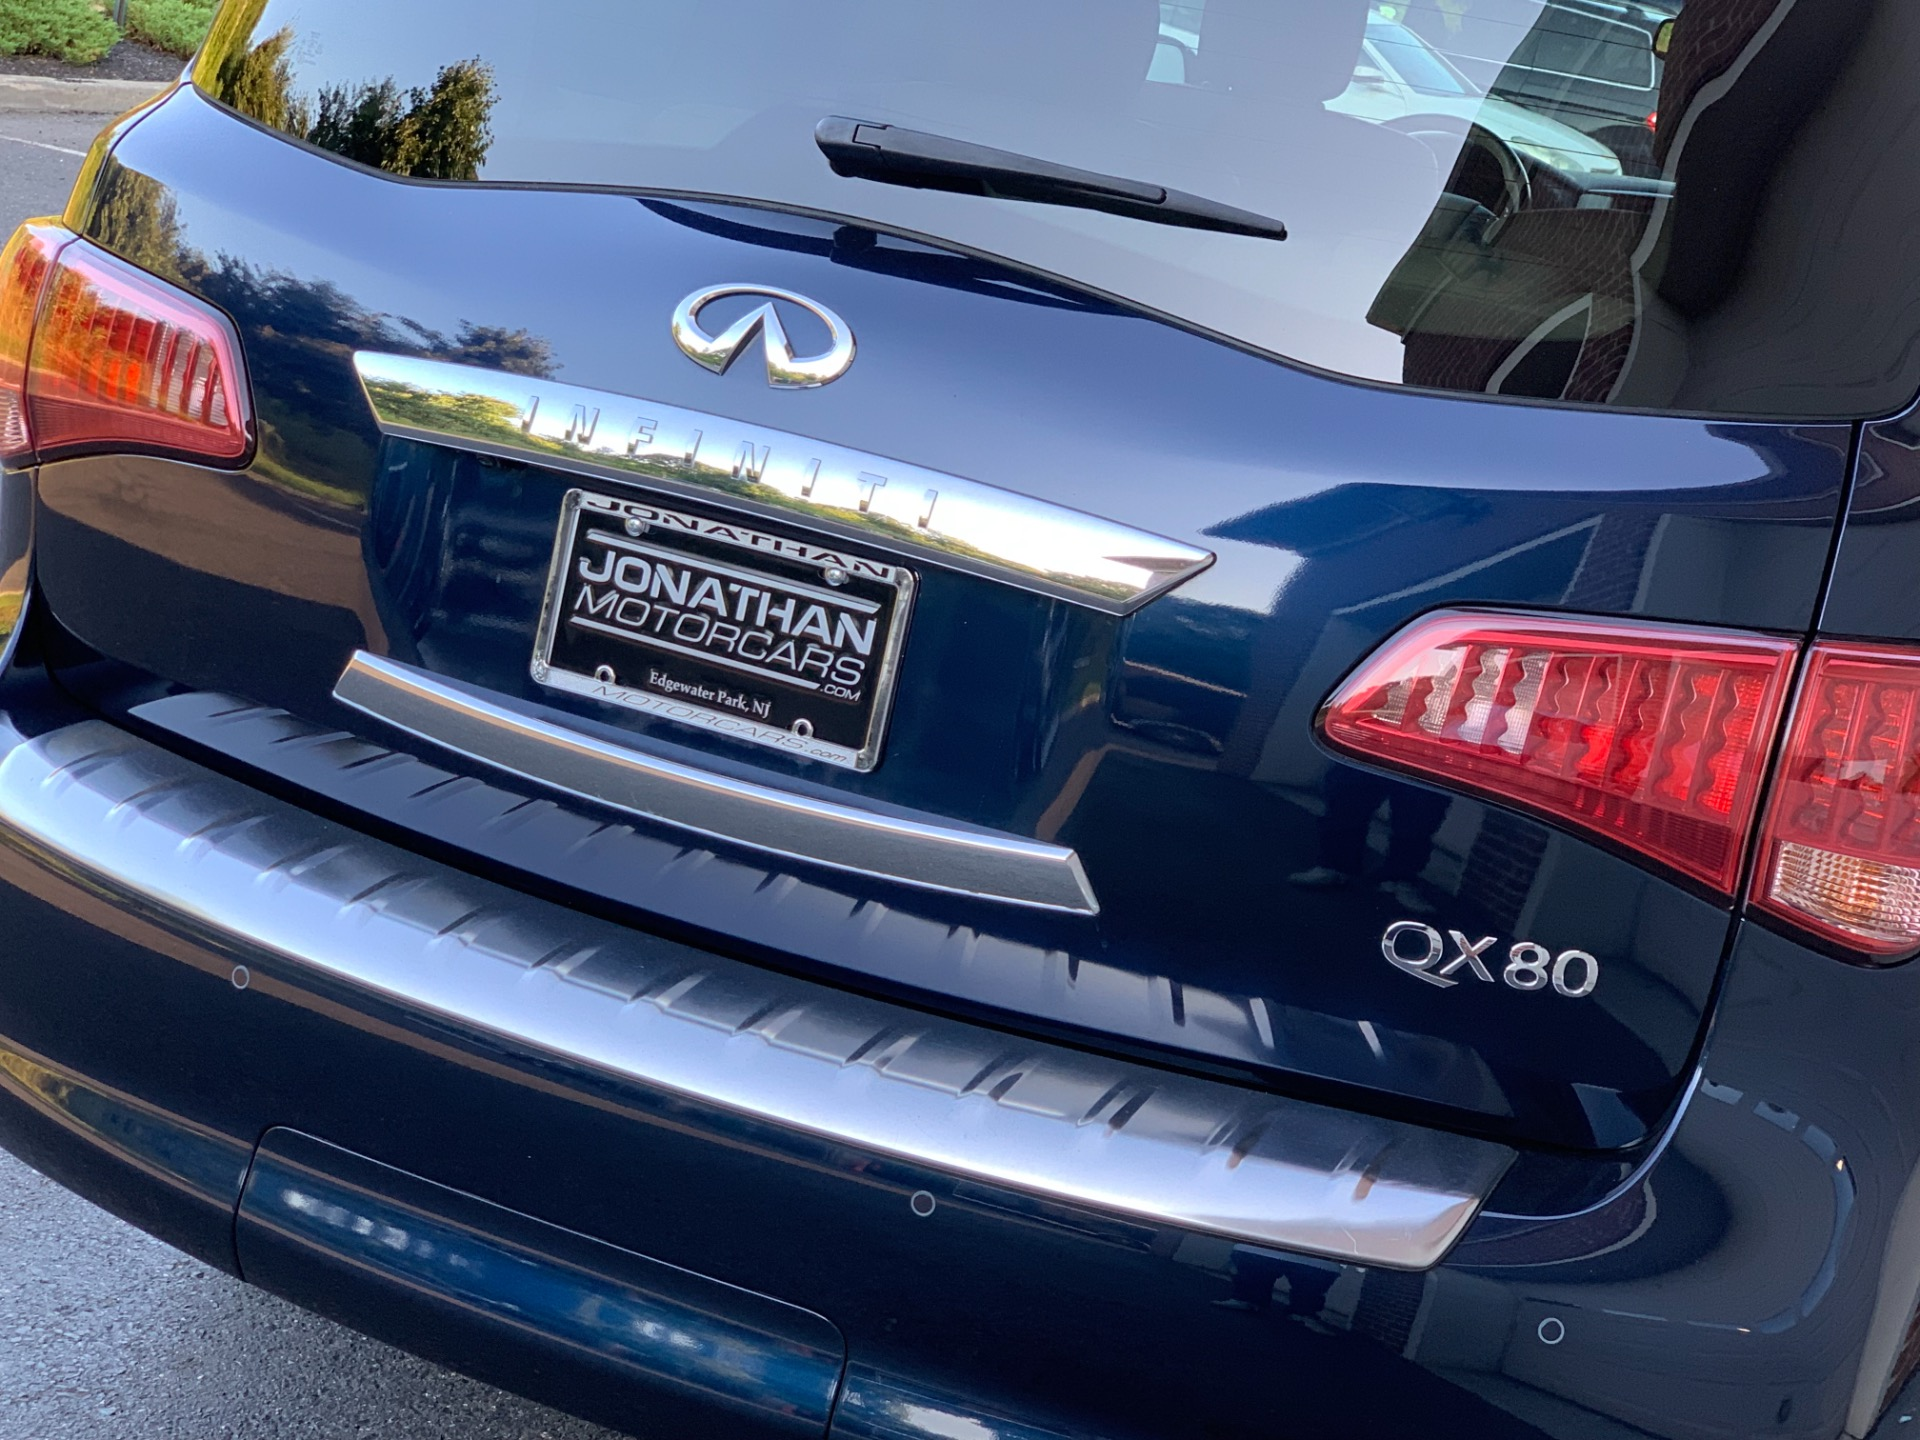 Used-2016-INFINITI-QX80-AWD-Navigation-Drivers-Asst-Package